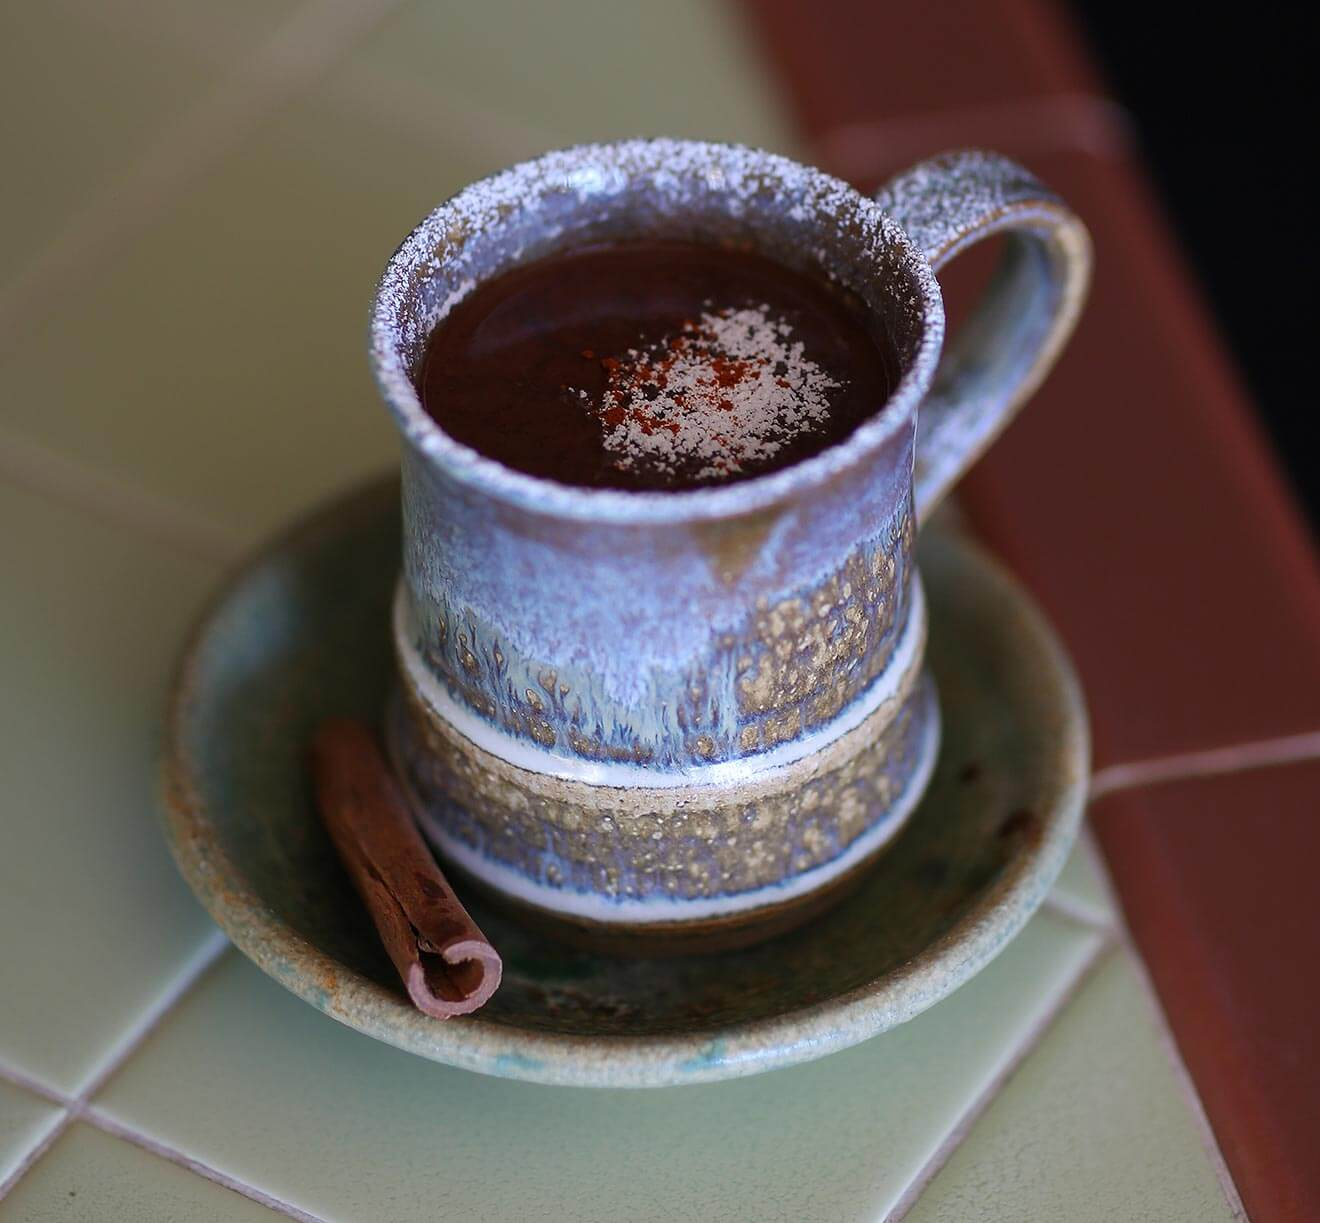 Chocolate Picante cocktail in coffee mug with plate